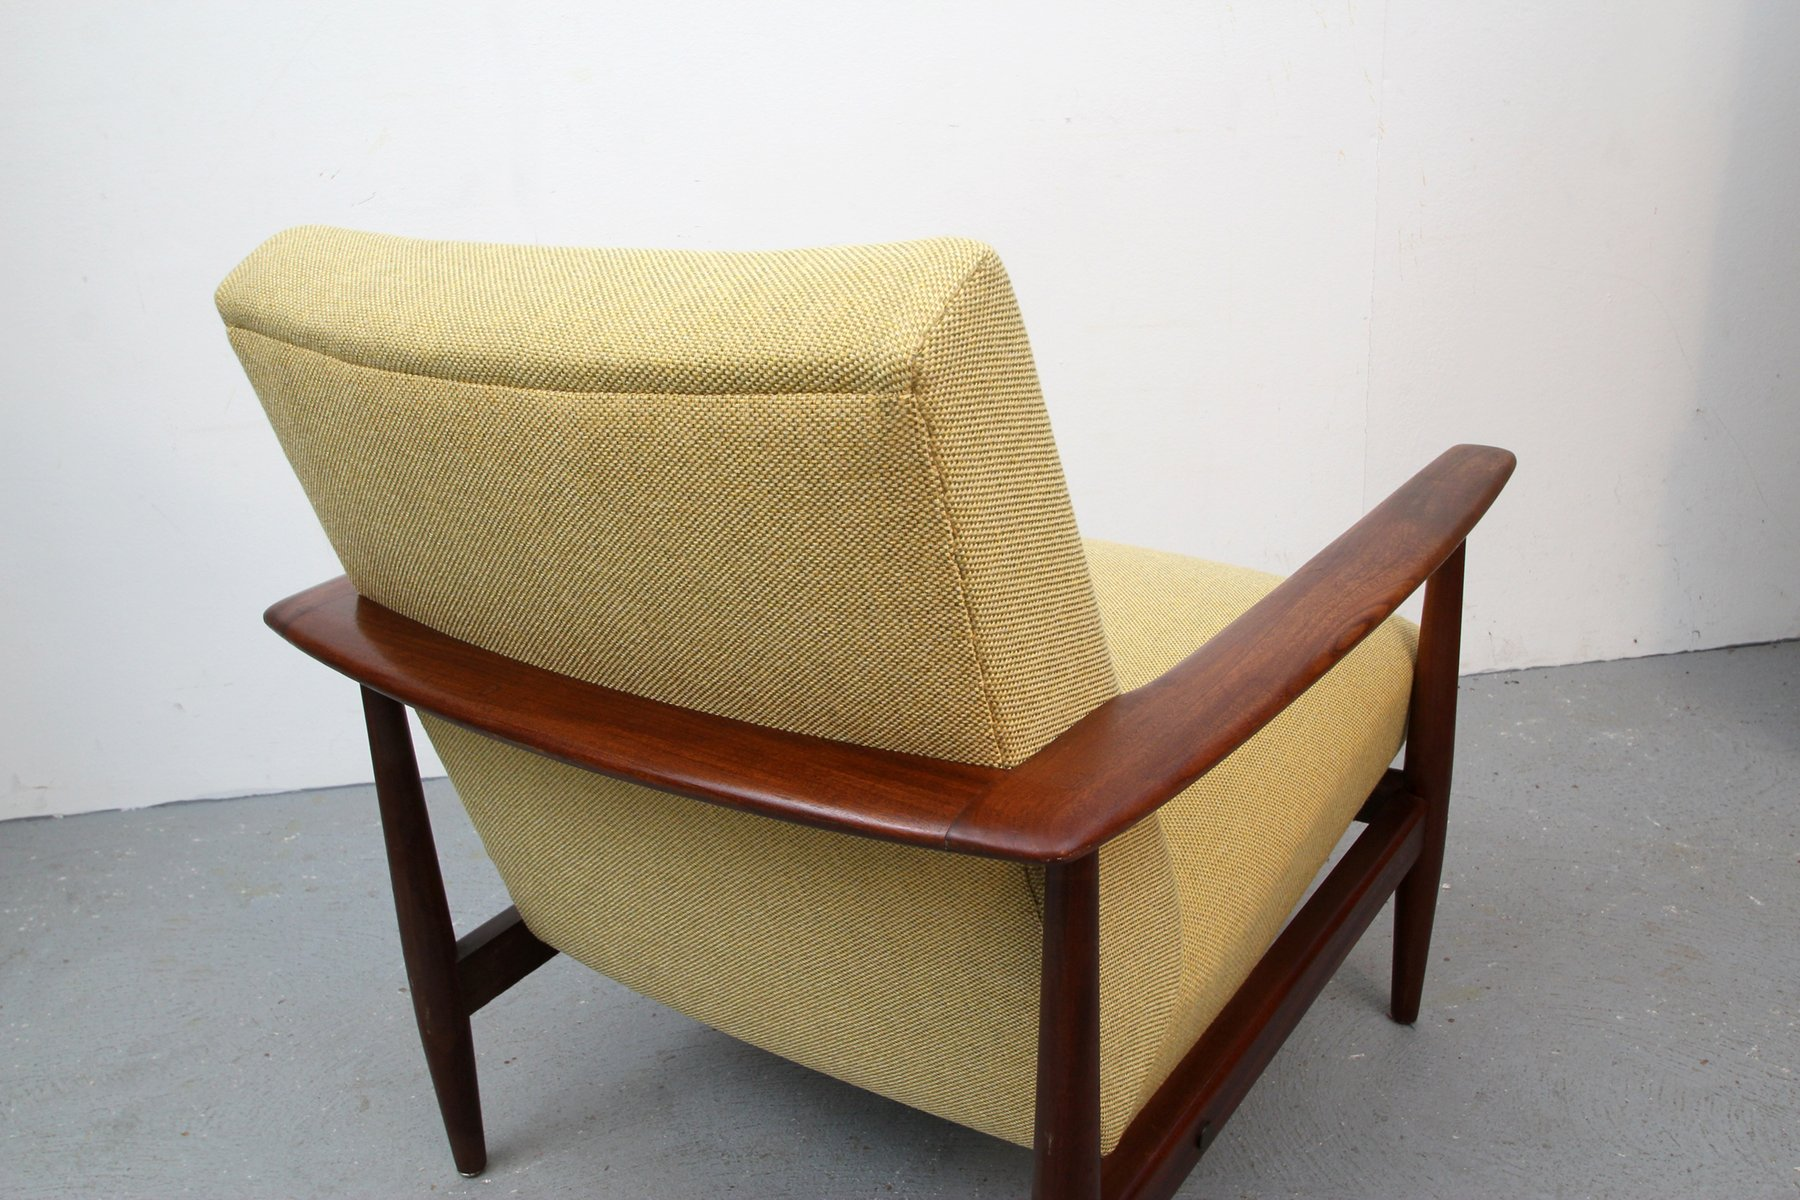 Armchair Upholstery Vintage Teak Armchair With Yellow Upholstery 1960s For Sale At Pamono